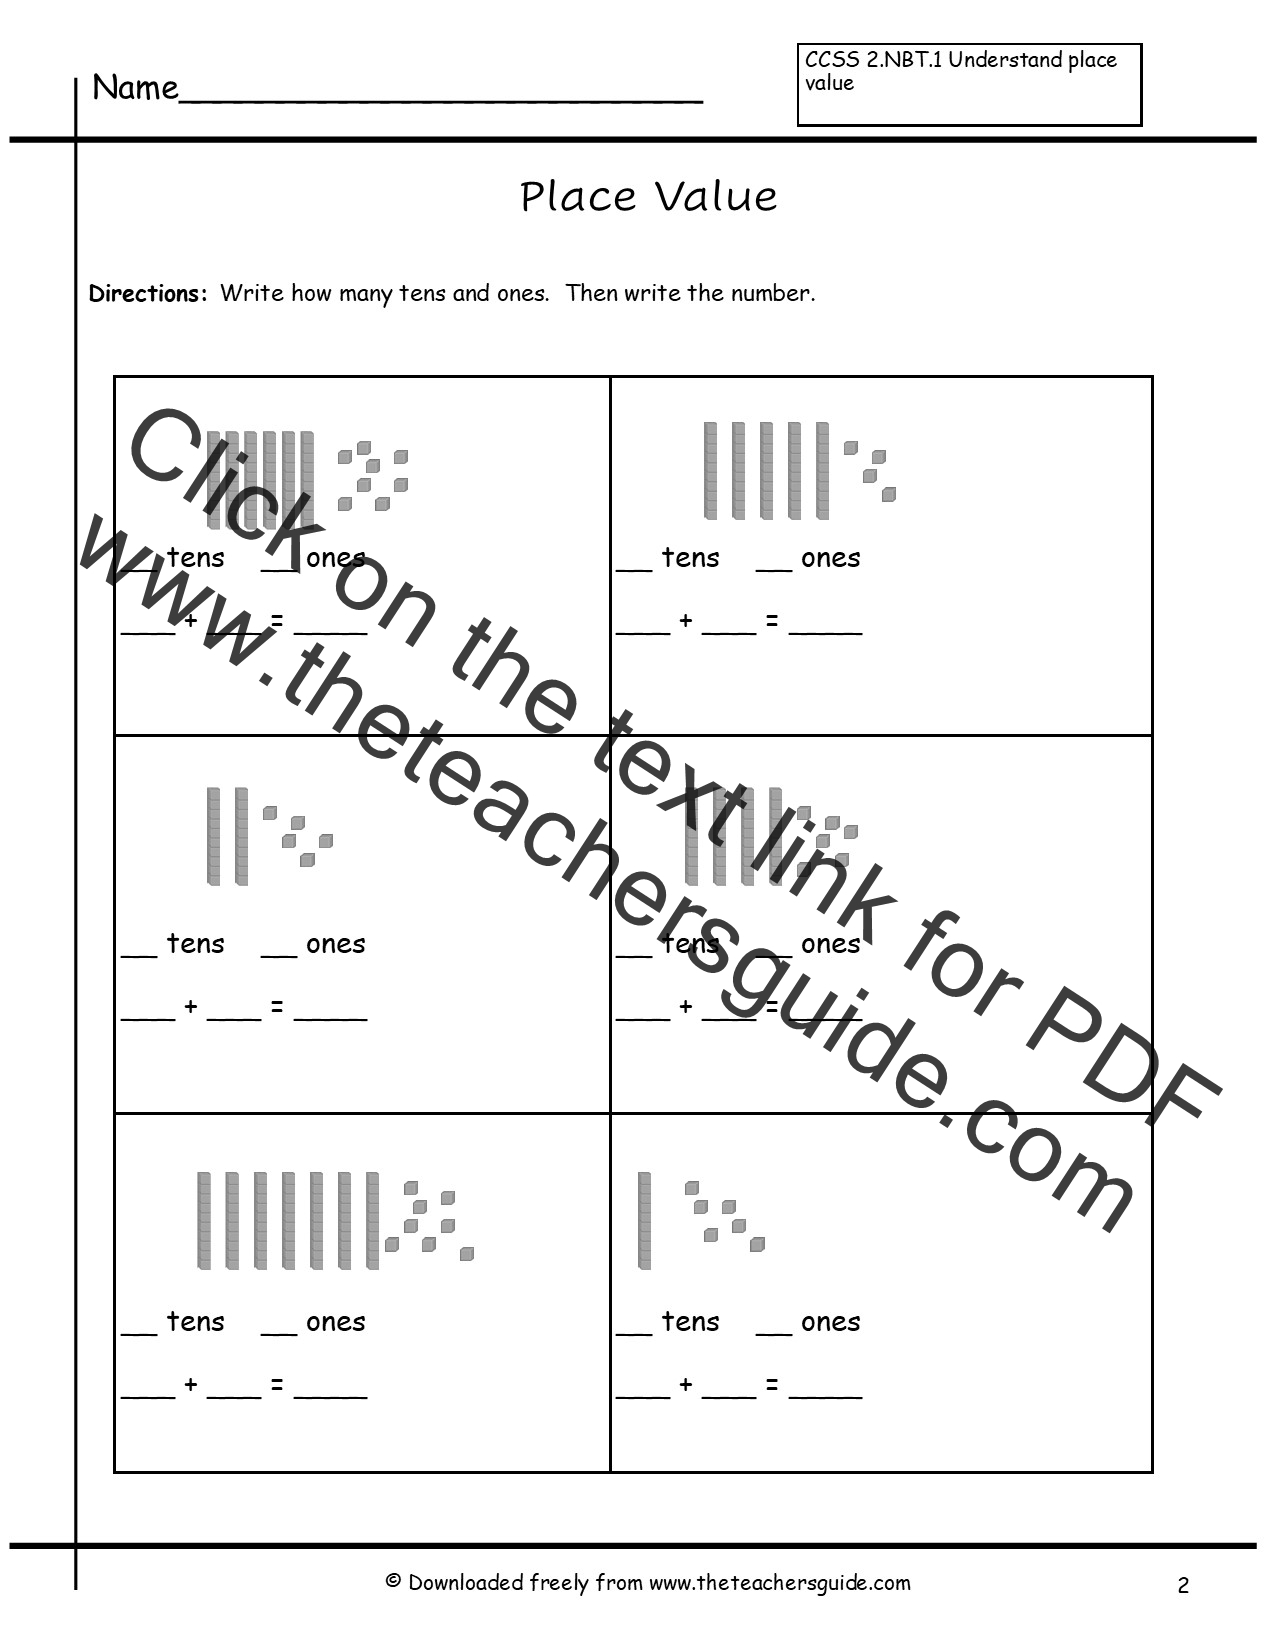 Place Value Worksheets from The Teachers Guide – Adding Tens and Ones Worksheets